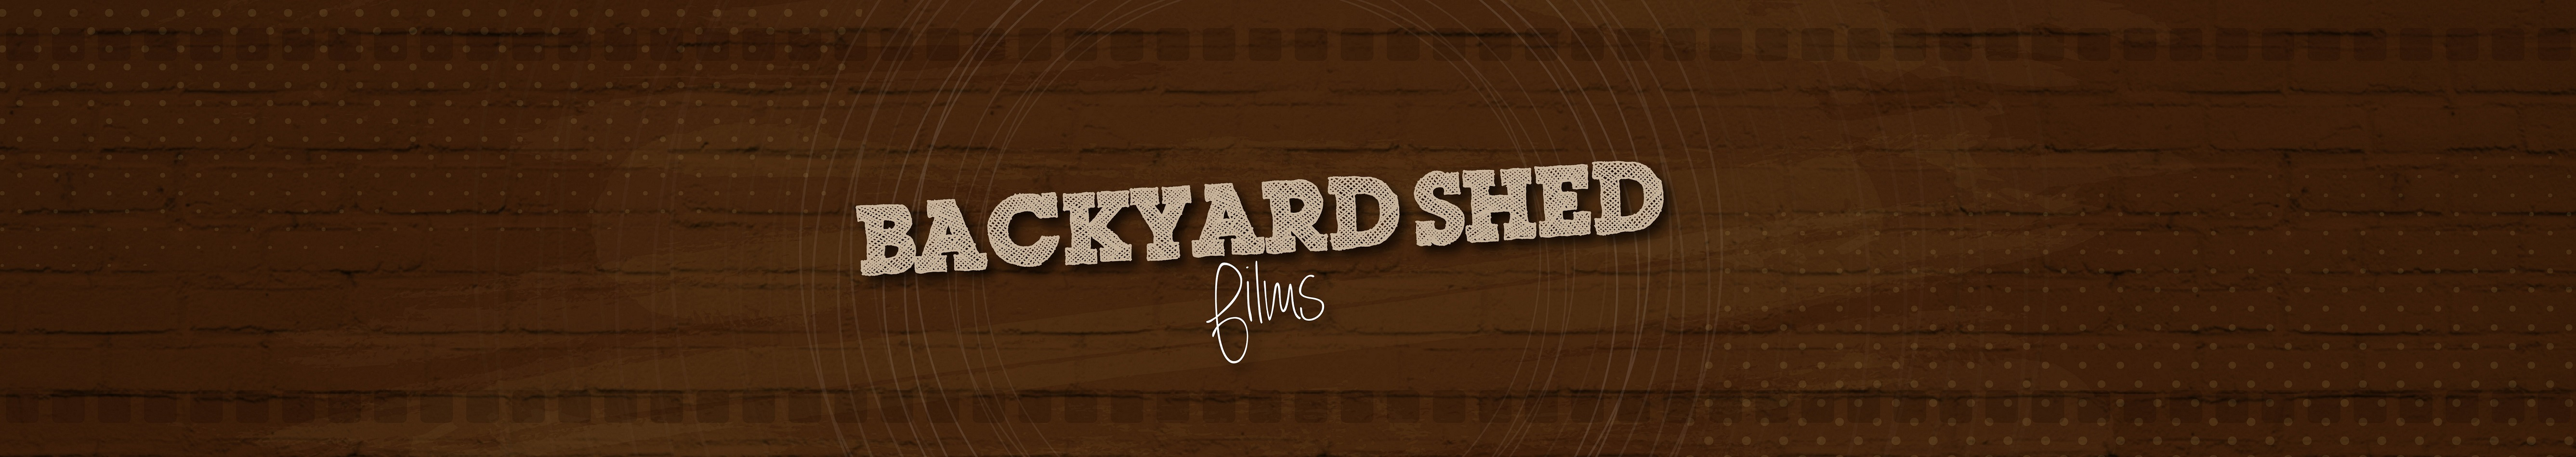 BuddyPress Register | Backyard Shed Films